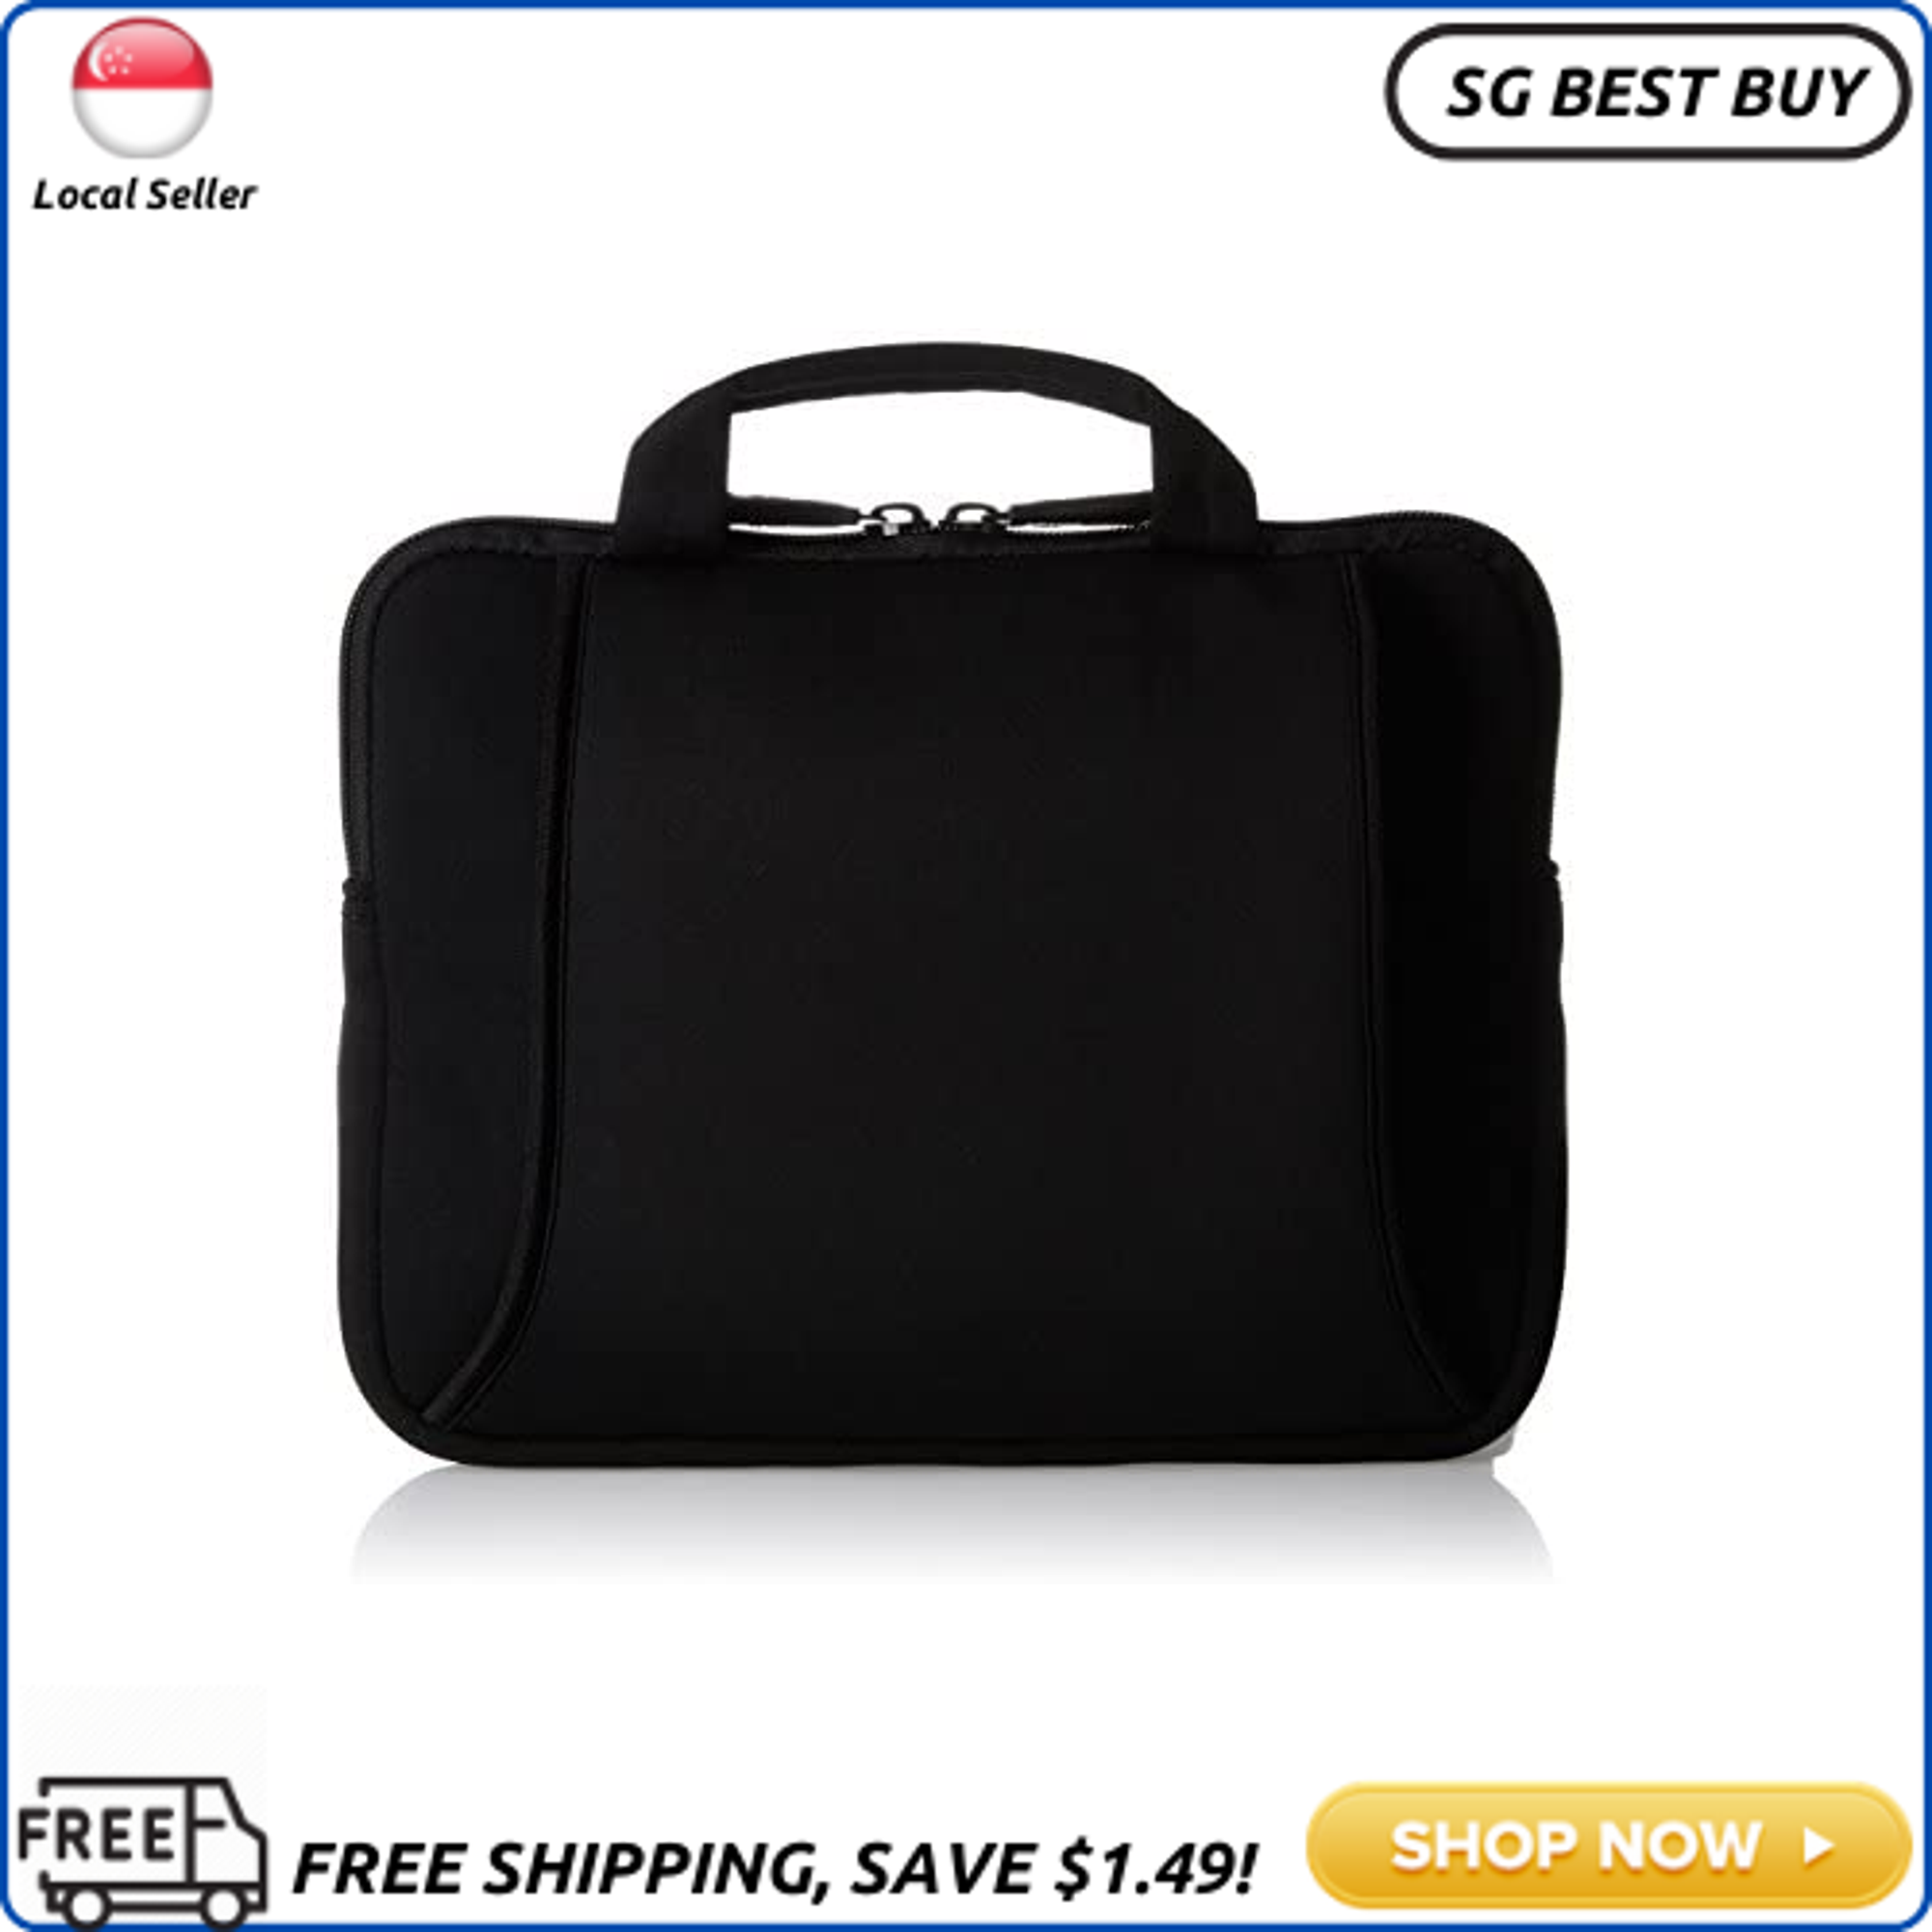 (SG SELLER - PACK OF 2) AmazonBasics 7 to 10 Laptop and Tablet Bag with Handles